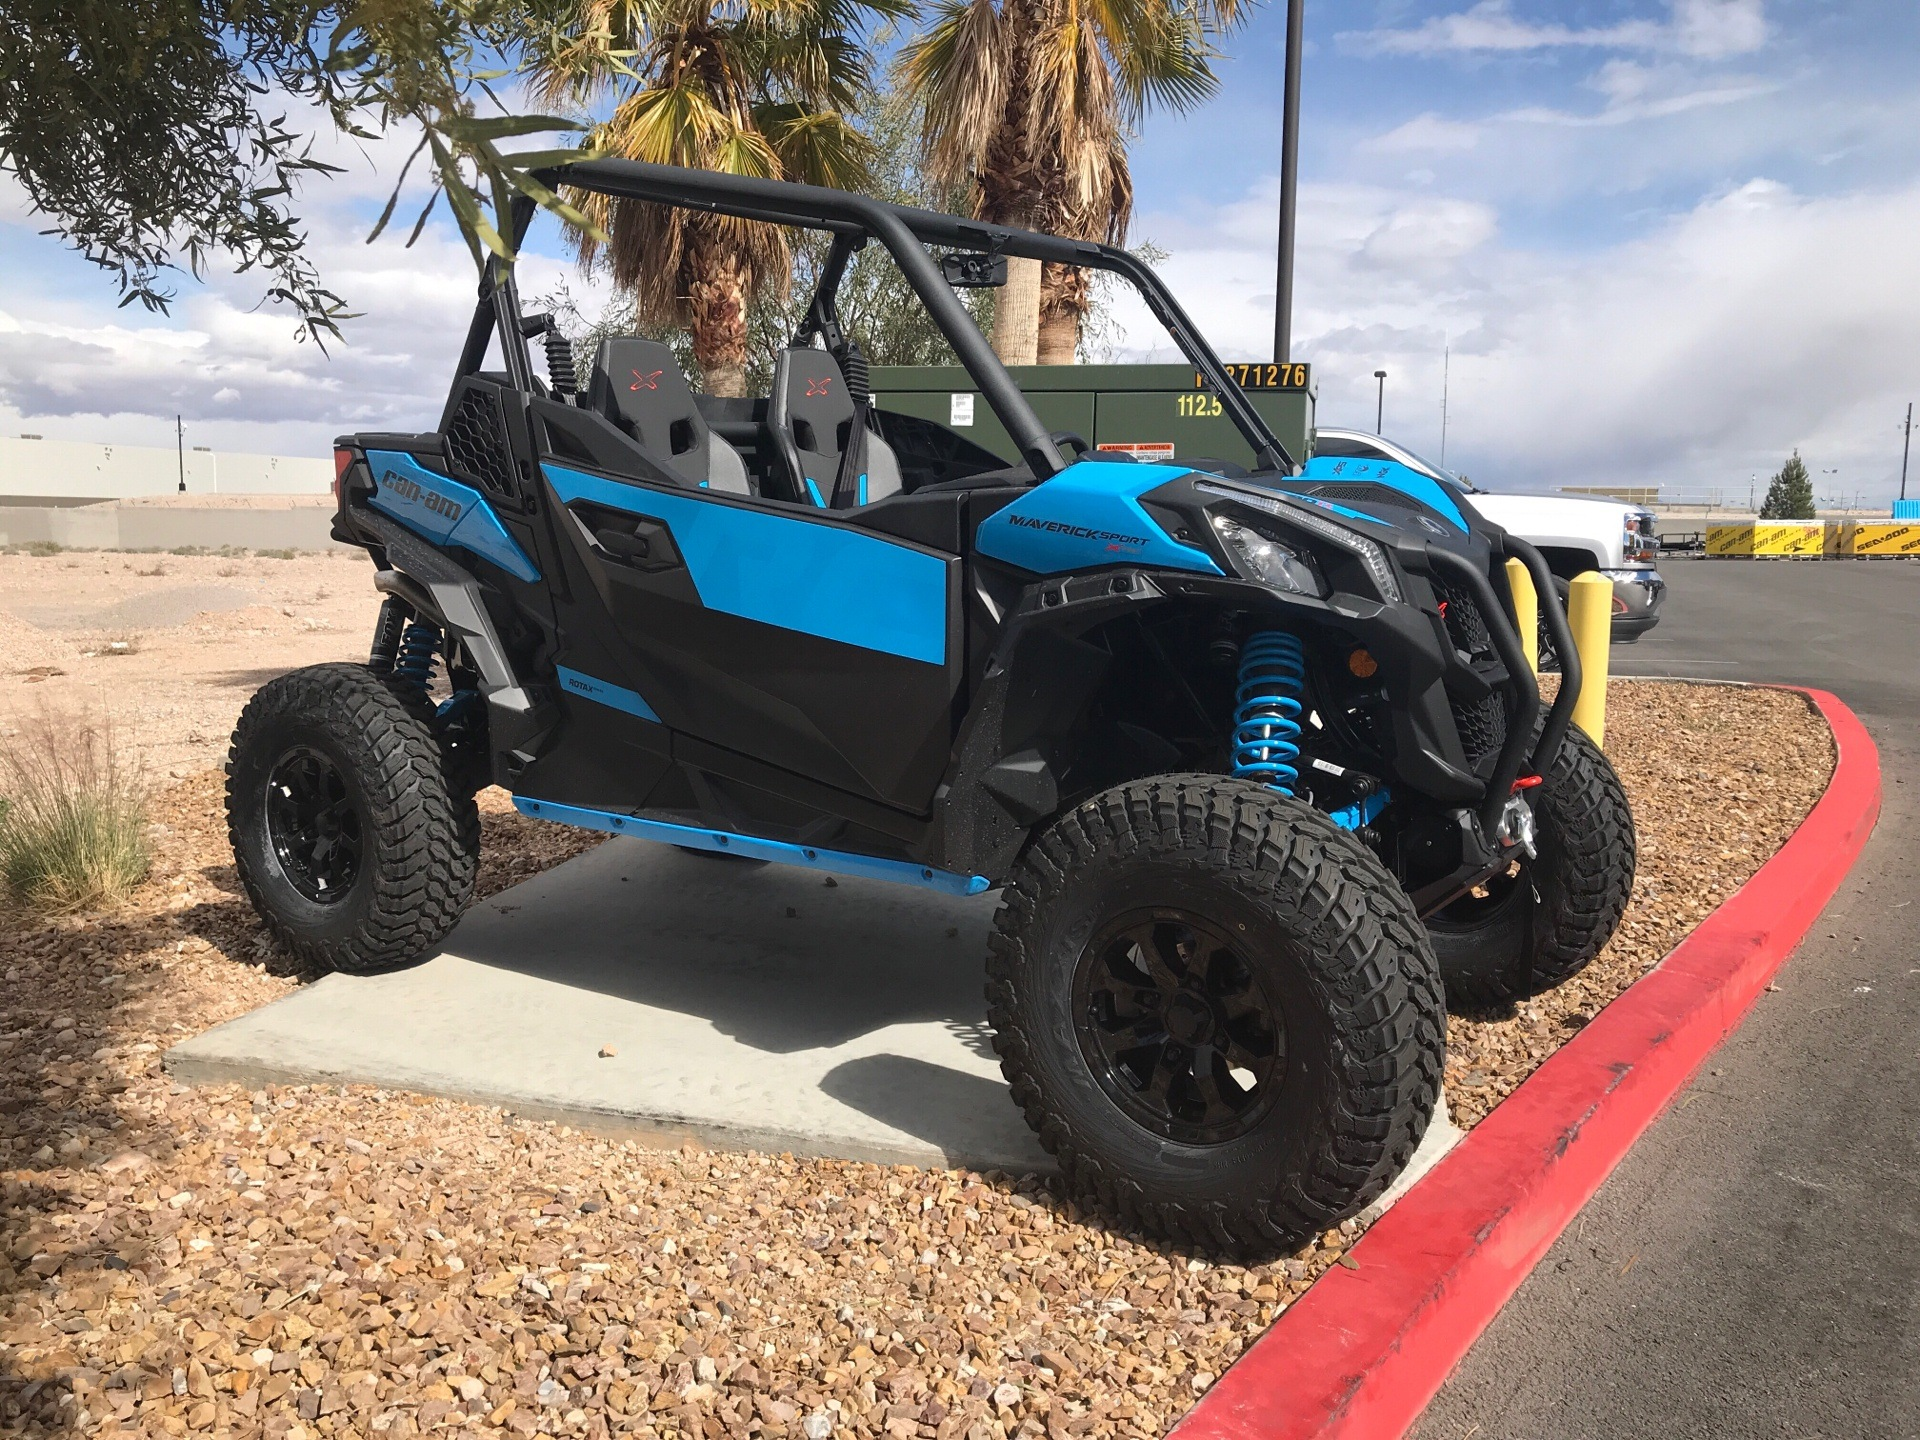 2019 Can-Am Maverick Sport X RC 1000R in Las Vegas, Nevada